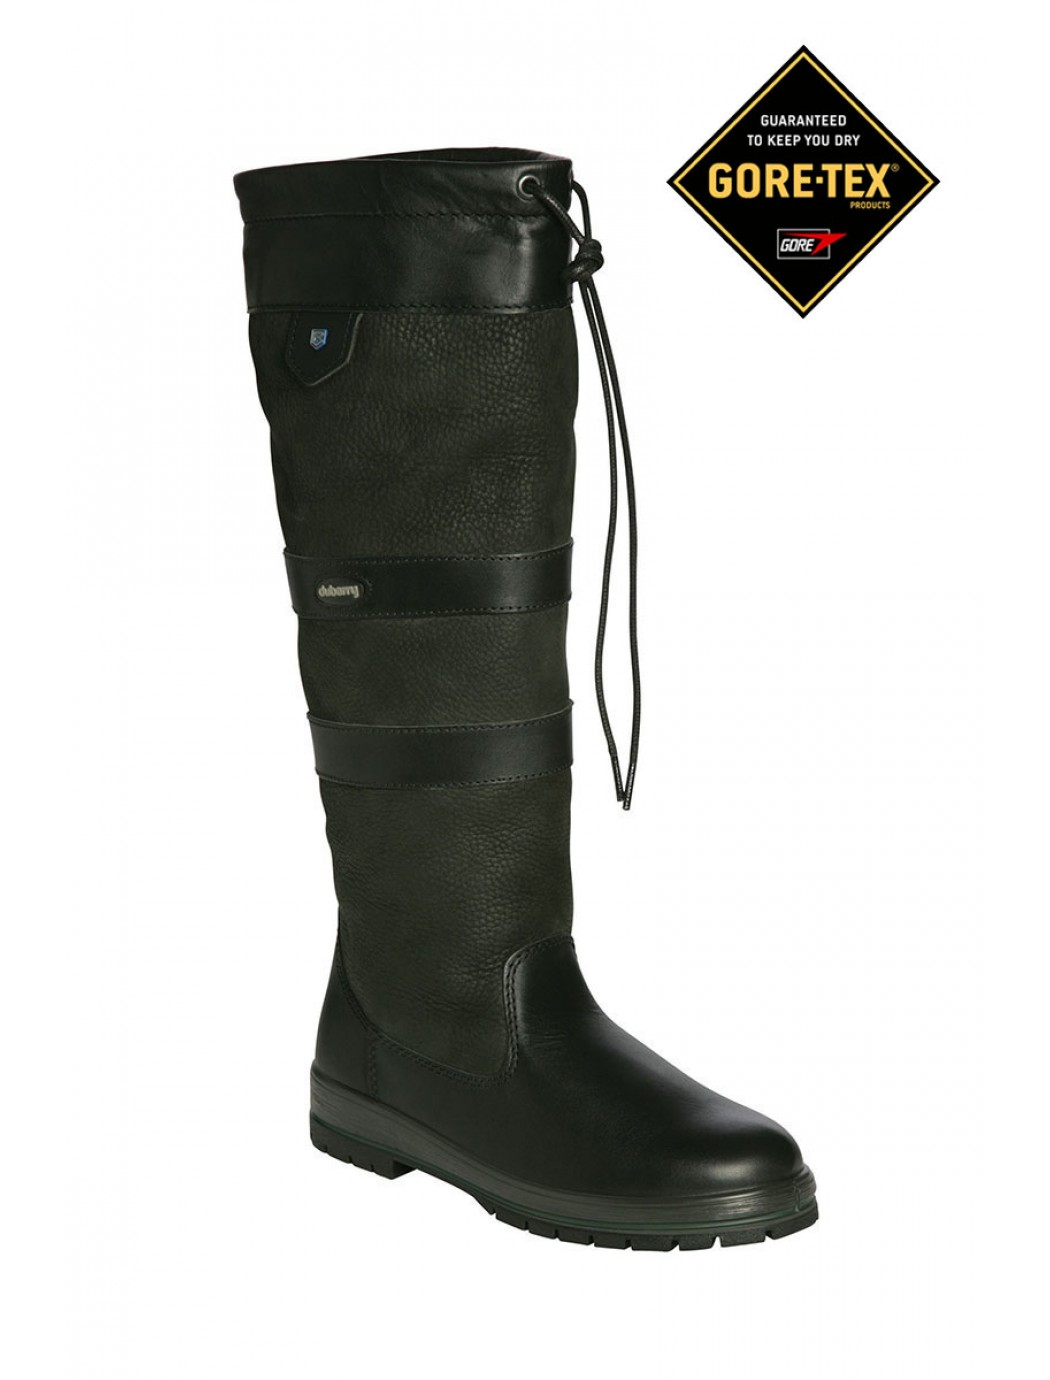 galway-country-boots-black